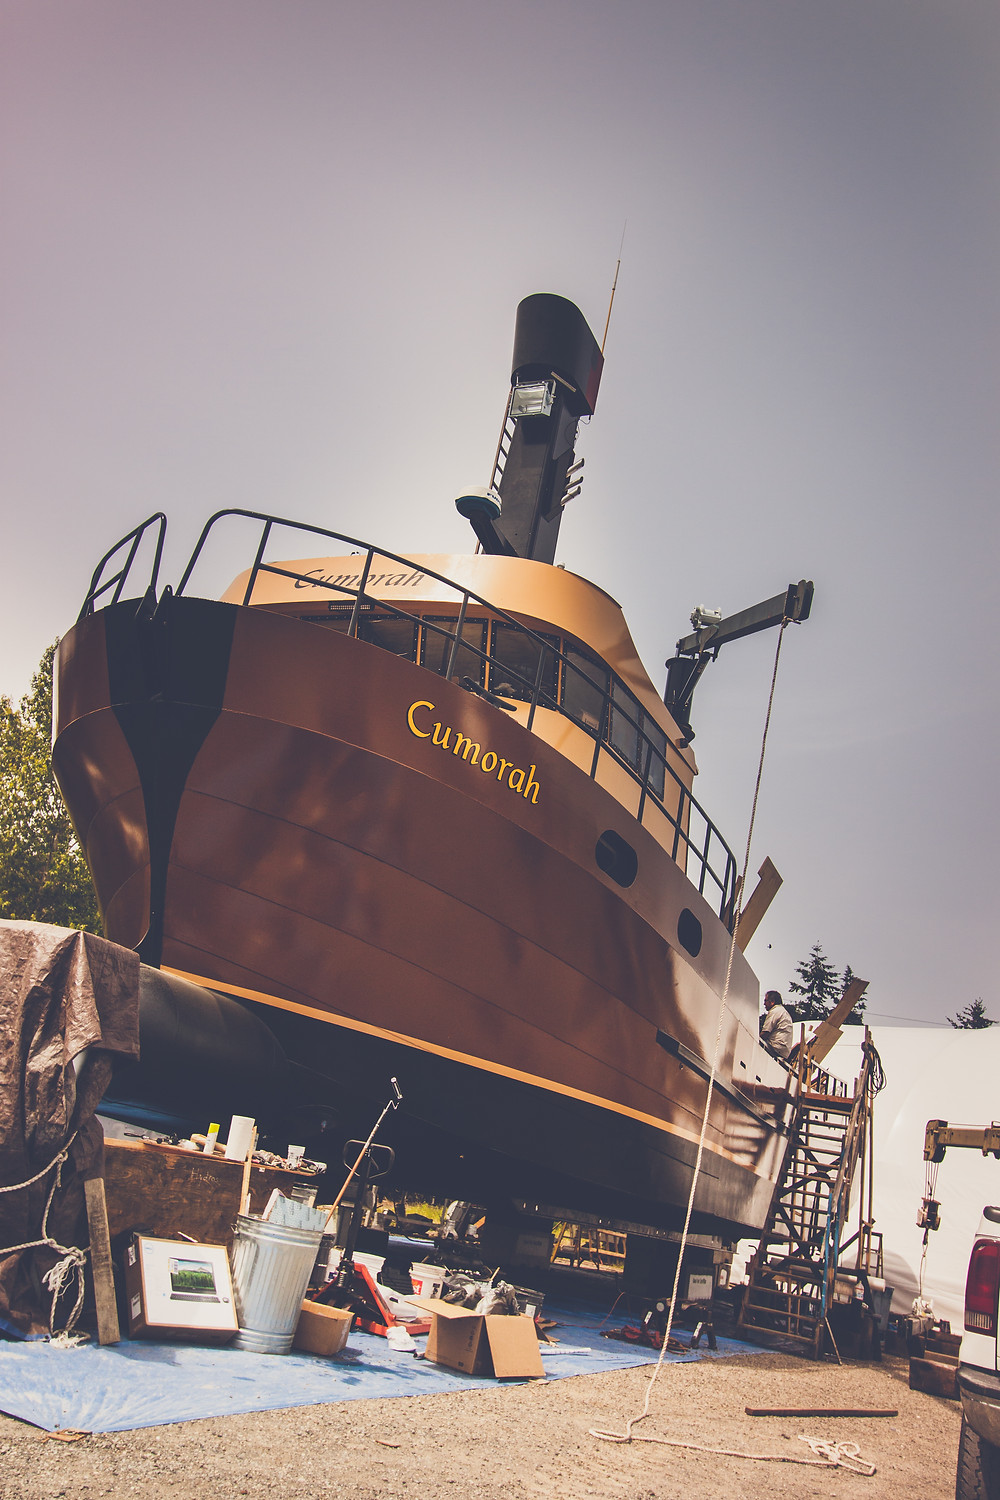 Cumorah, fishing boat under construction at Port Townsend Boat Haven